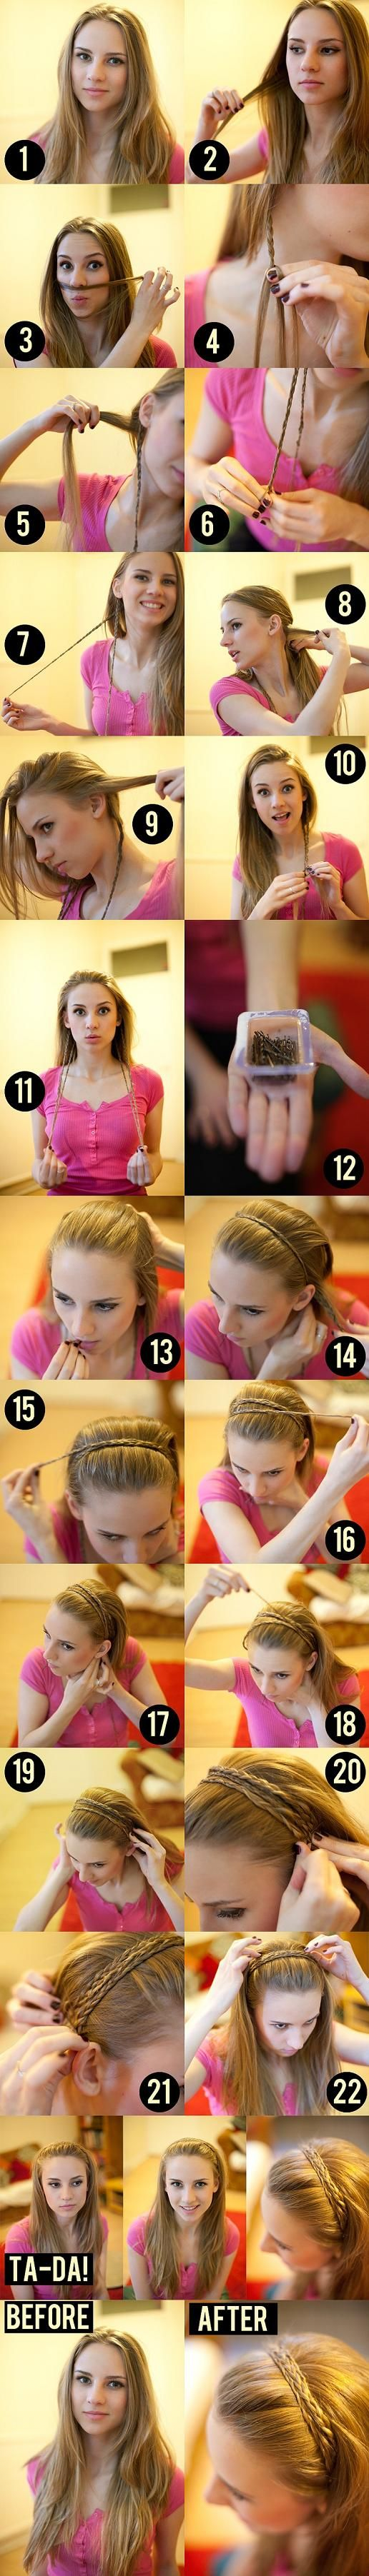 braid a few strands of hair and use them as a headband